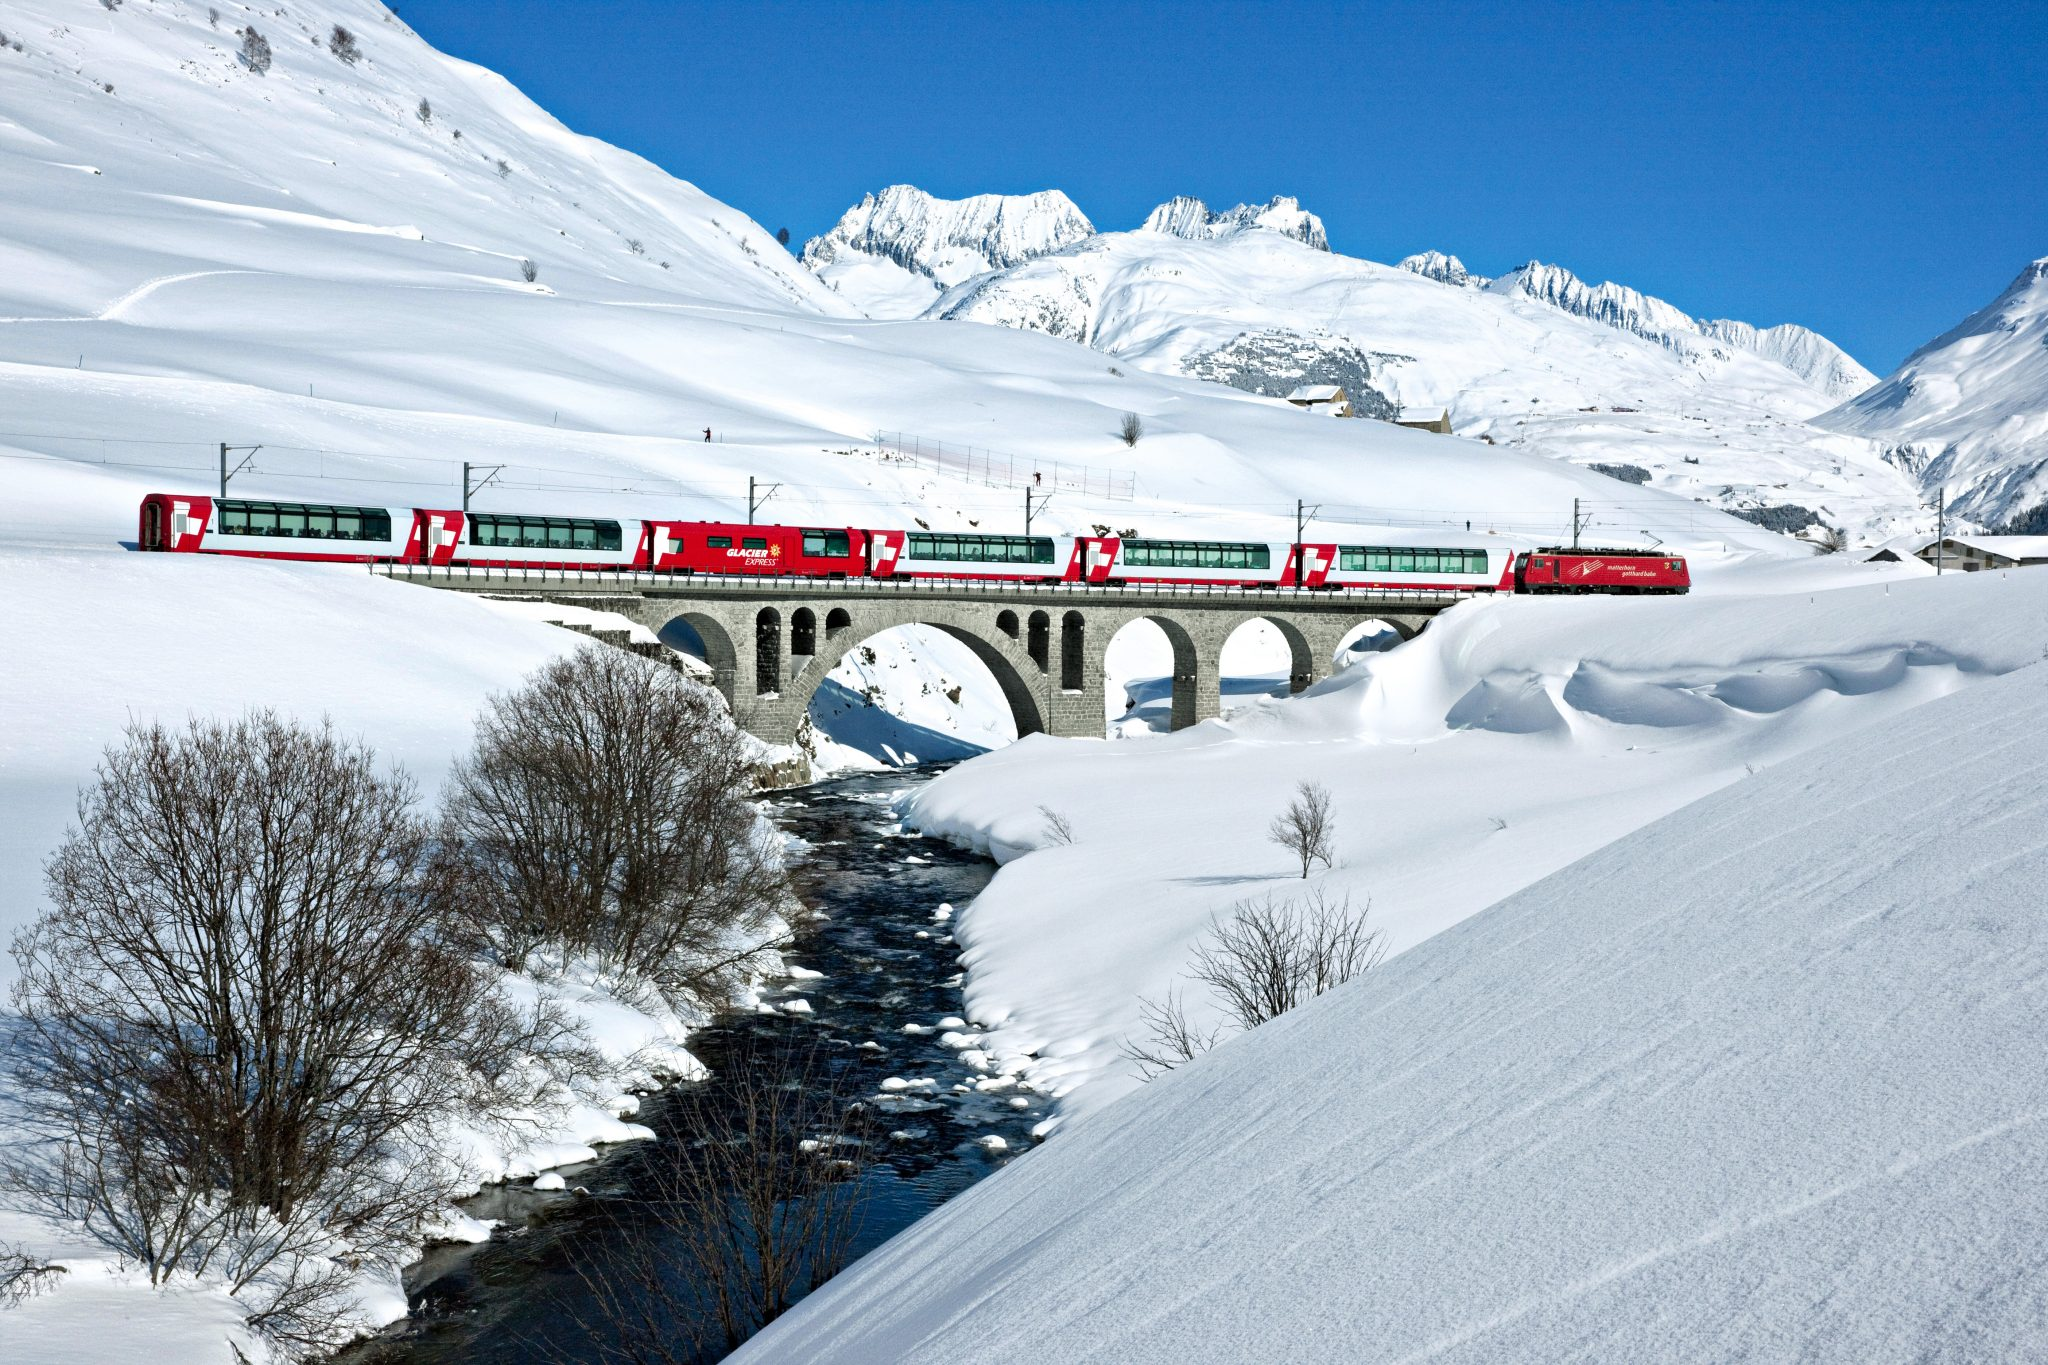 Treinreizen Zwitserland Winter - Glacier Express panoramatrein over een viaduct in de sneeuw